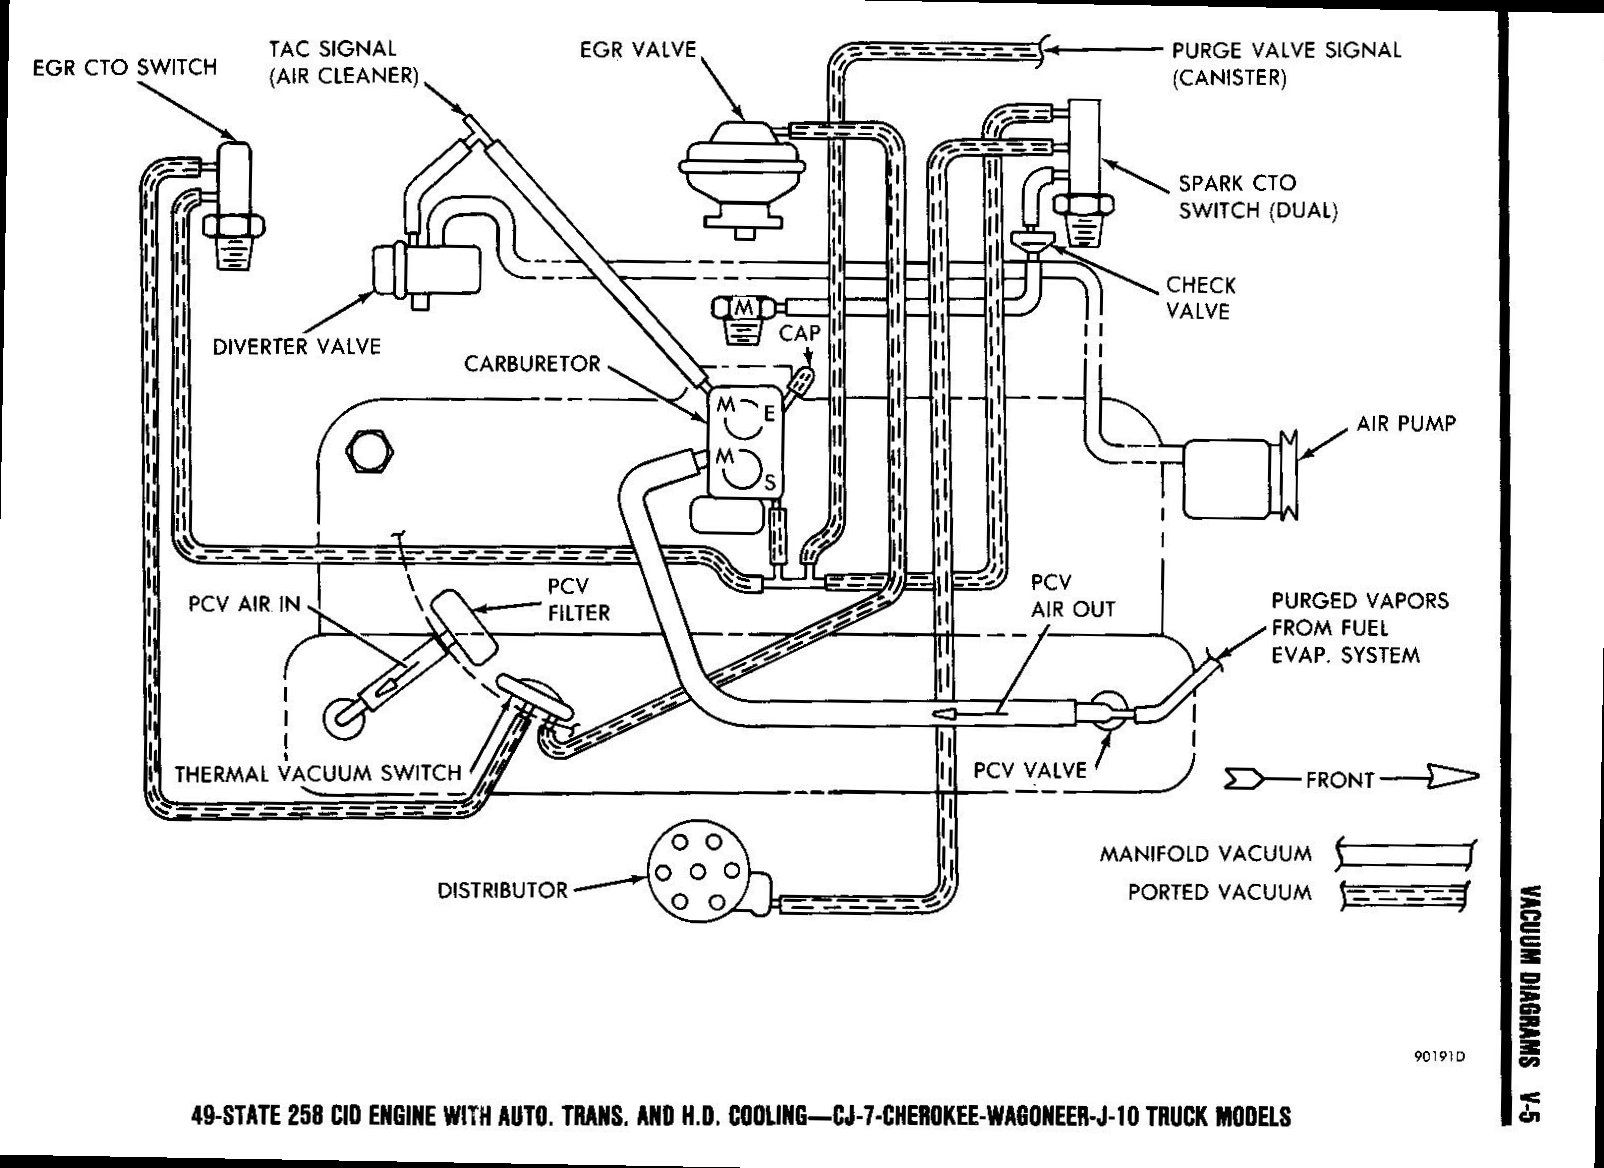 86 jeep cherokee vacuum diagram cj5 258 vacuum diagram  jeepforum com  with images  jeep cj7  cj5 258 vacuum diagram  jeepforum com